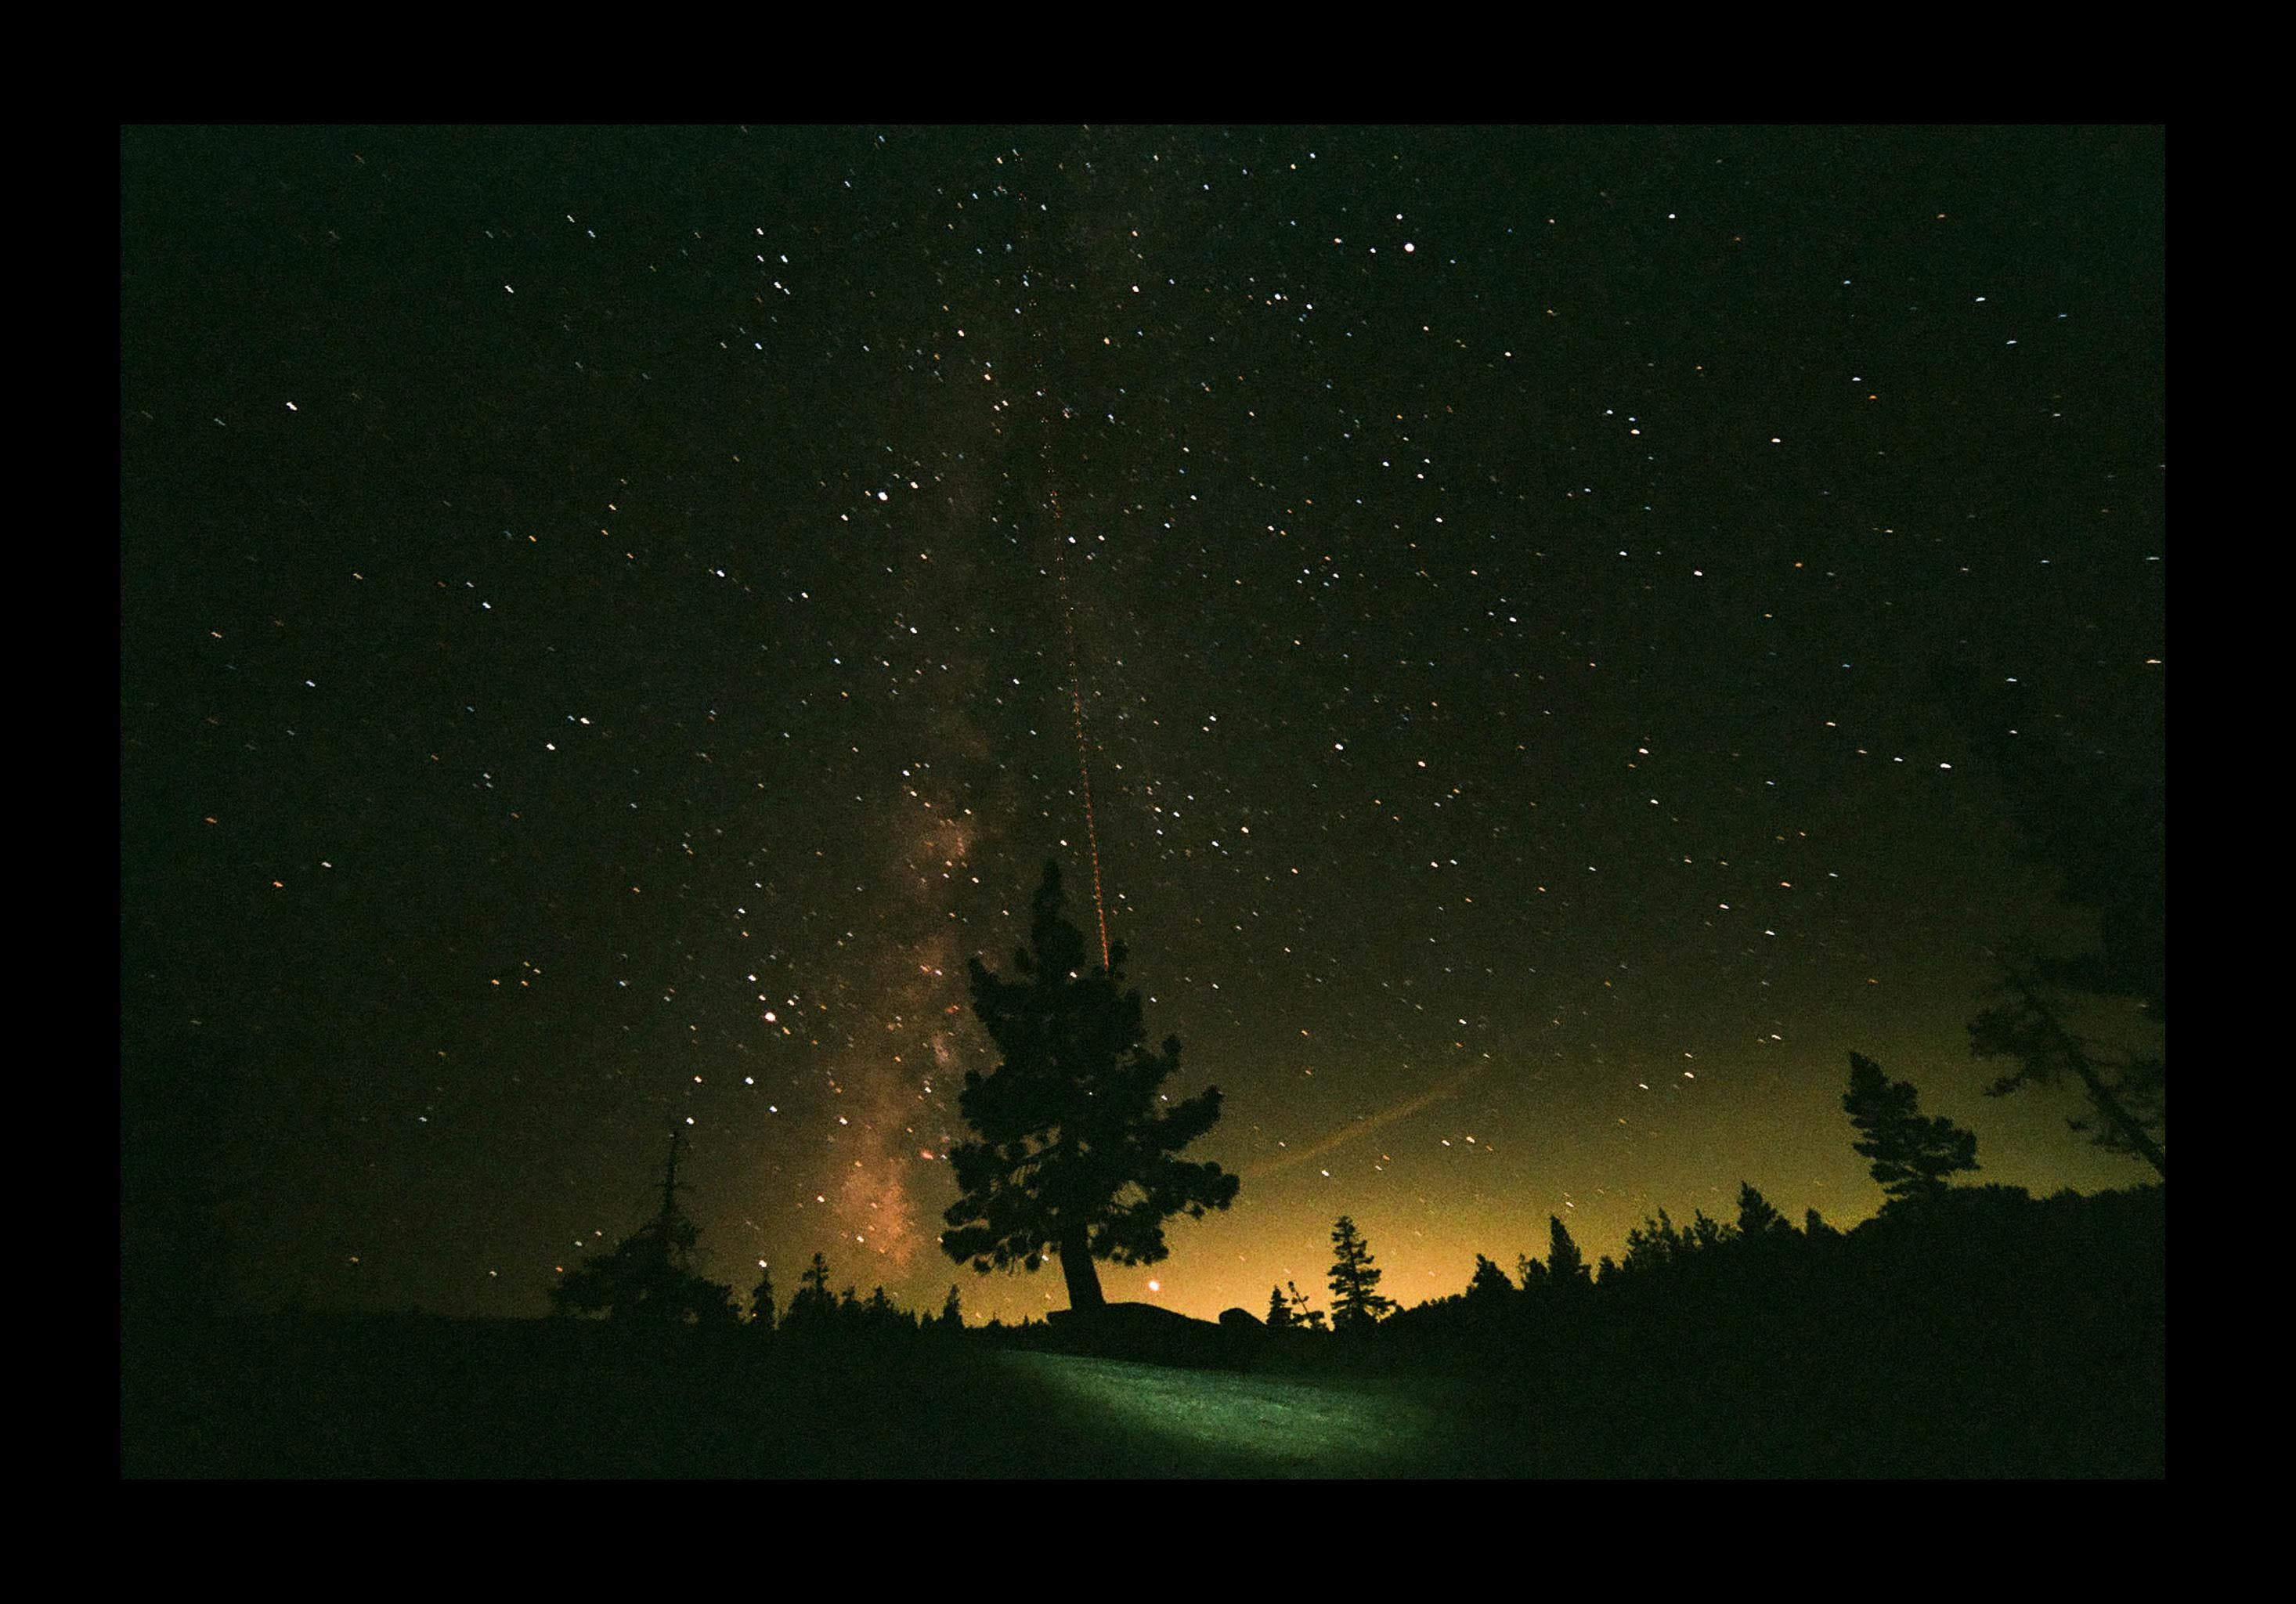 This Milky Way Photo Was Shot on Fujifilm Superia X-TRA 400